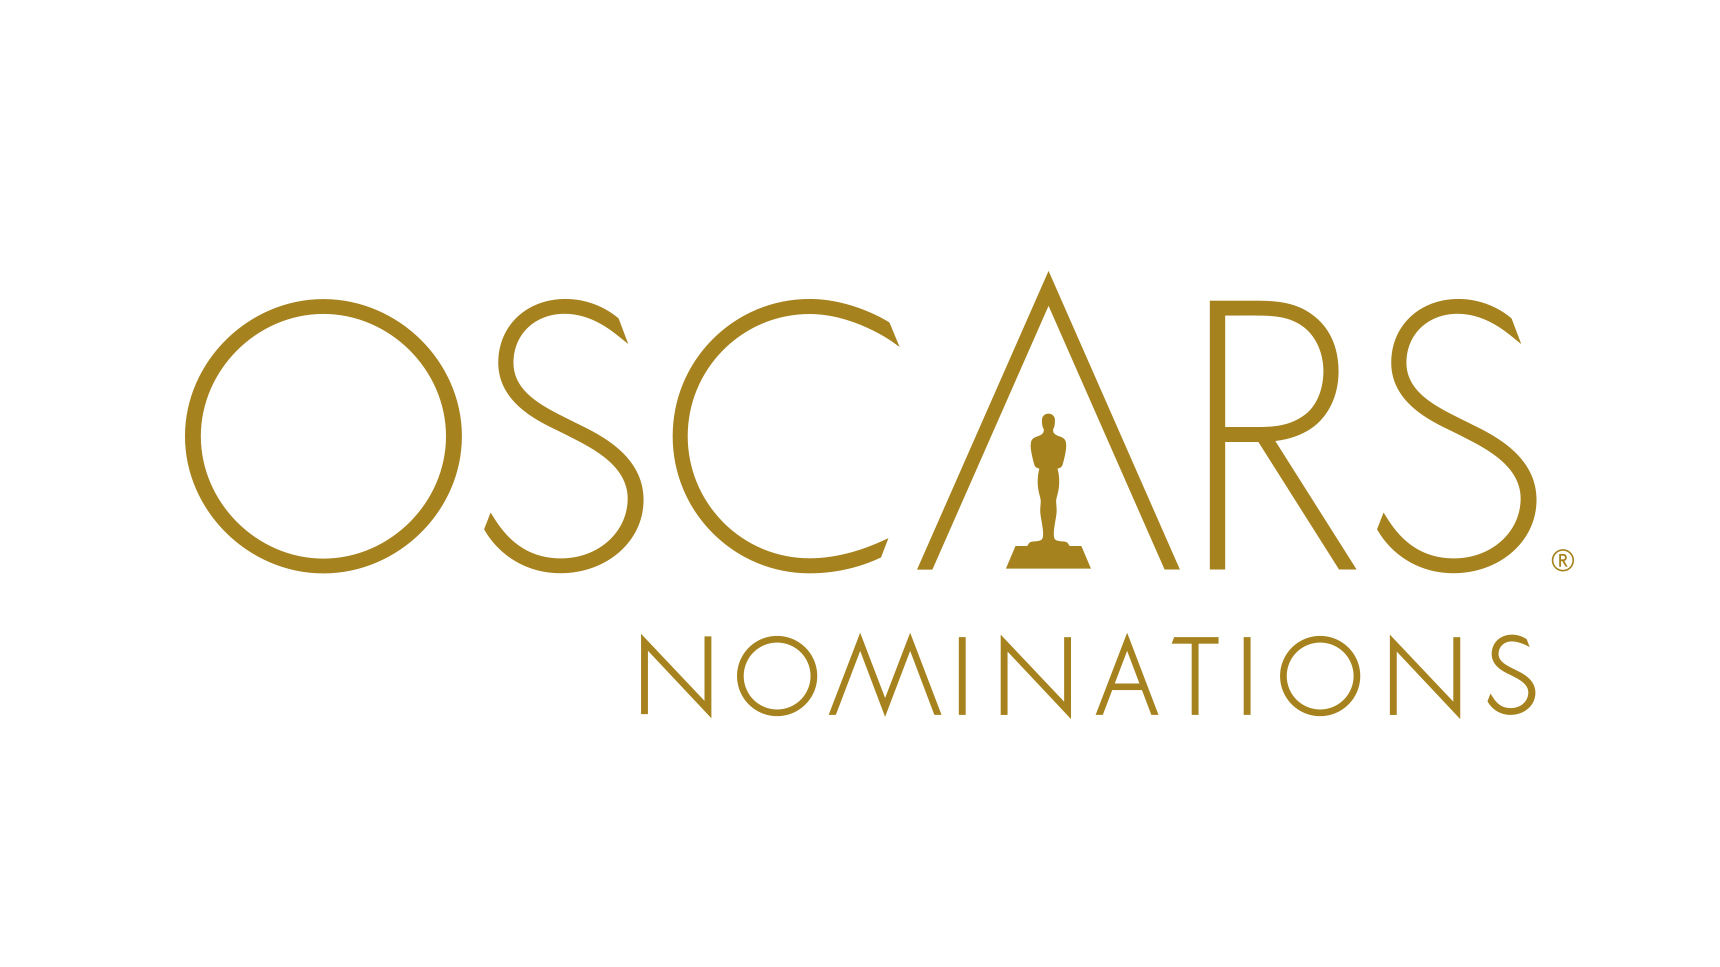 87TH OSCARS® NOMINATIONS ANNOUNCED | Oscars pluspng.com | Academy of Motion Picture  Arts and Sciences - Nominees PNG